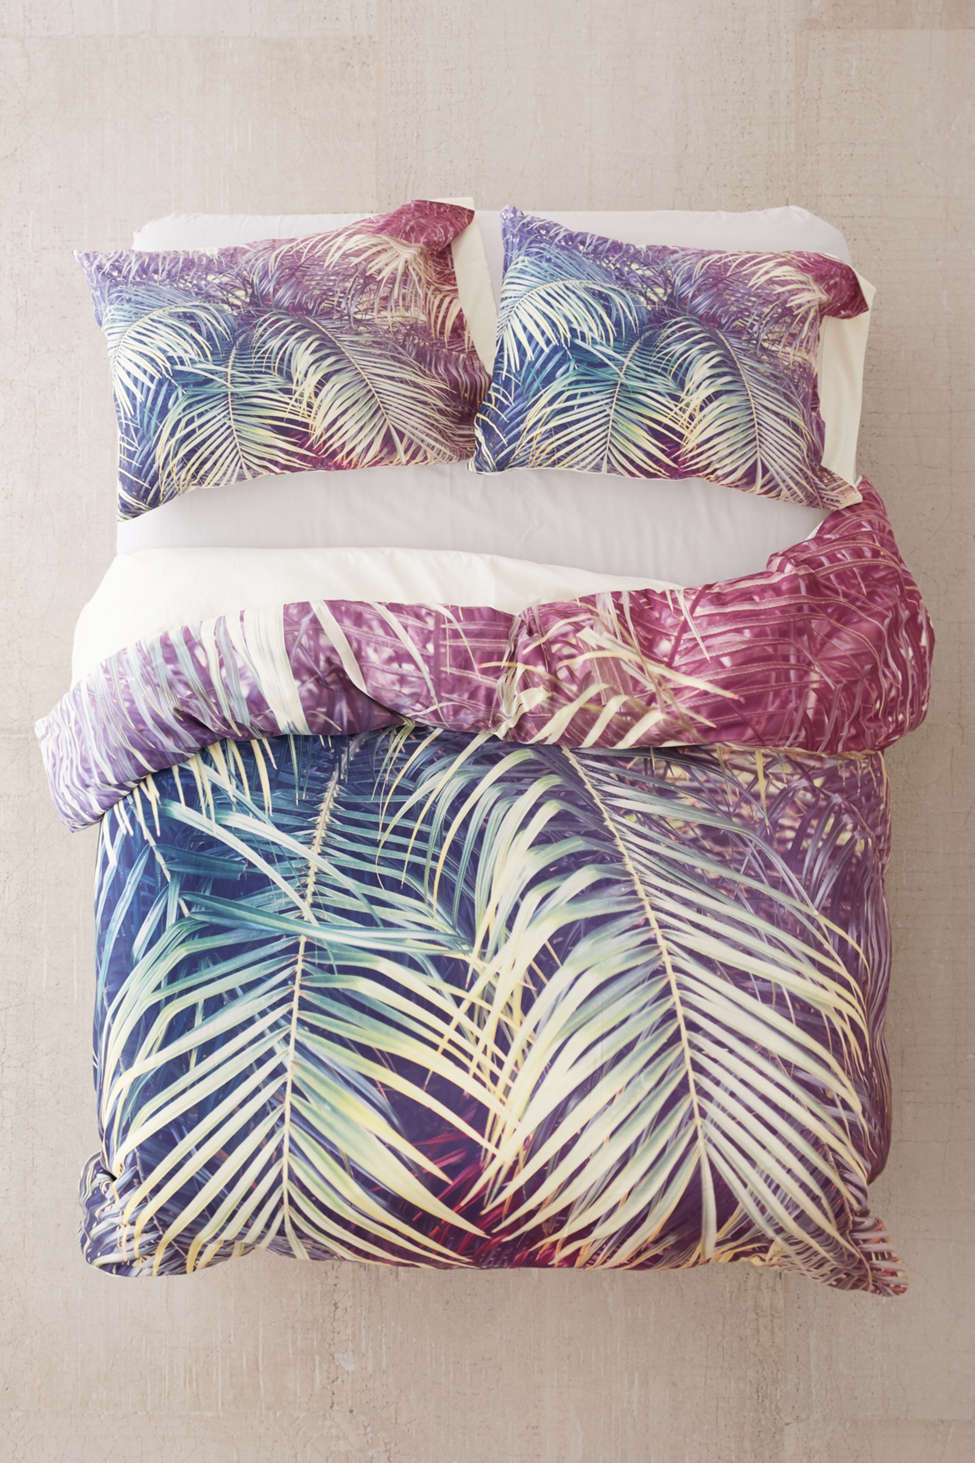 Slide View: 2: Bree Madden For Deny Tropics Duvet Cover